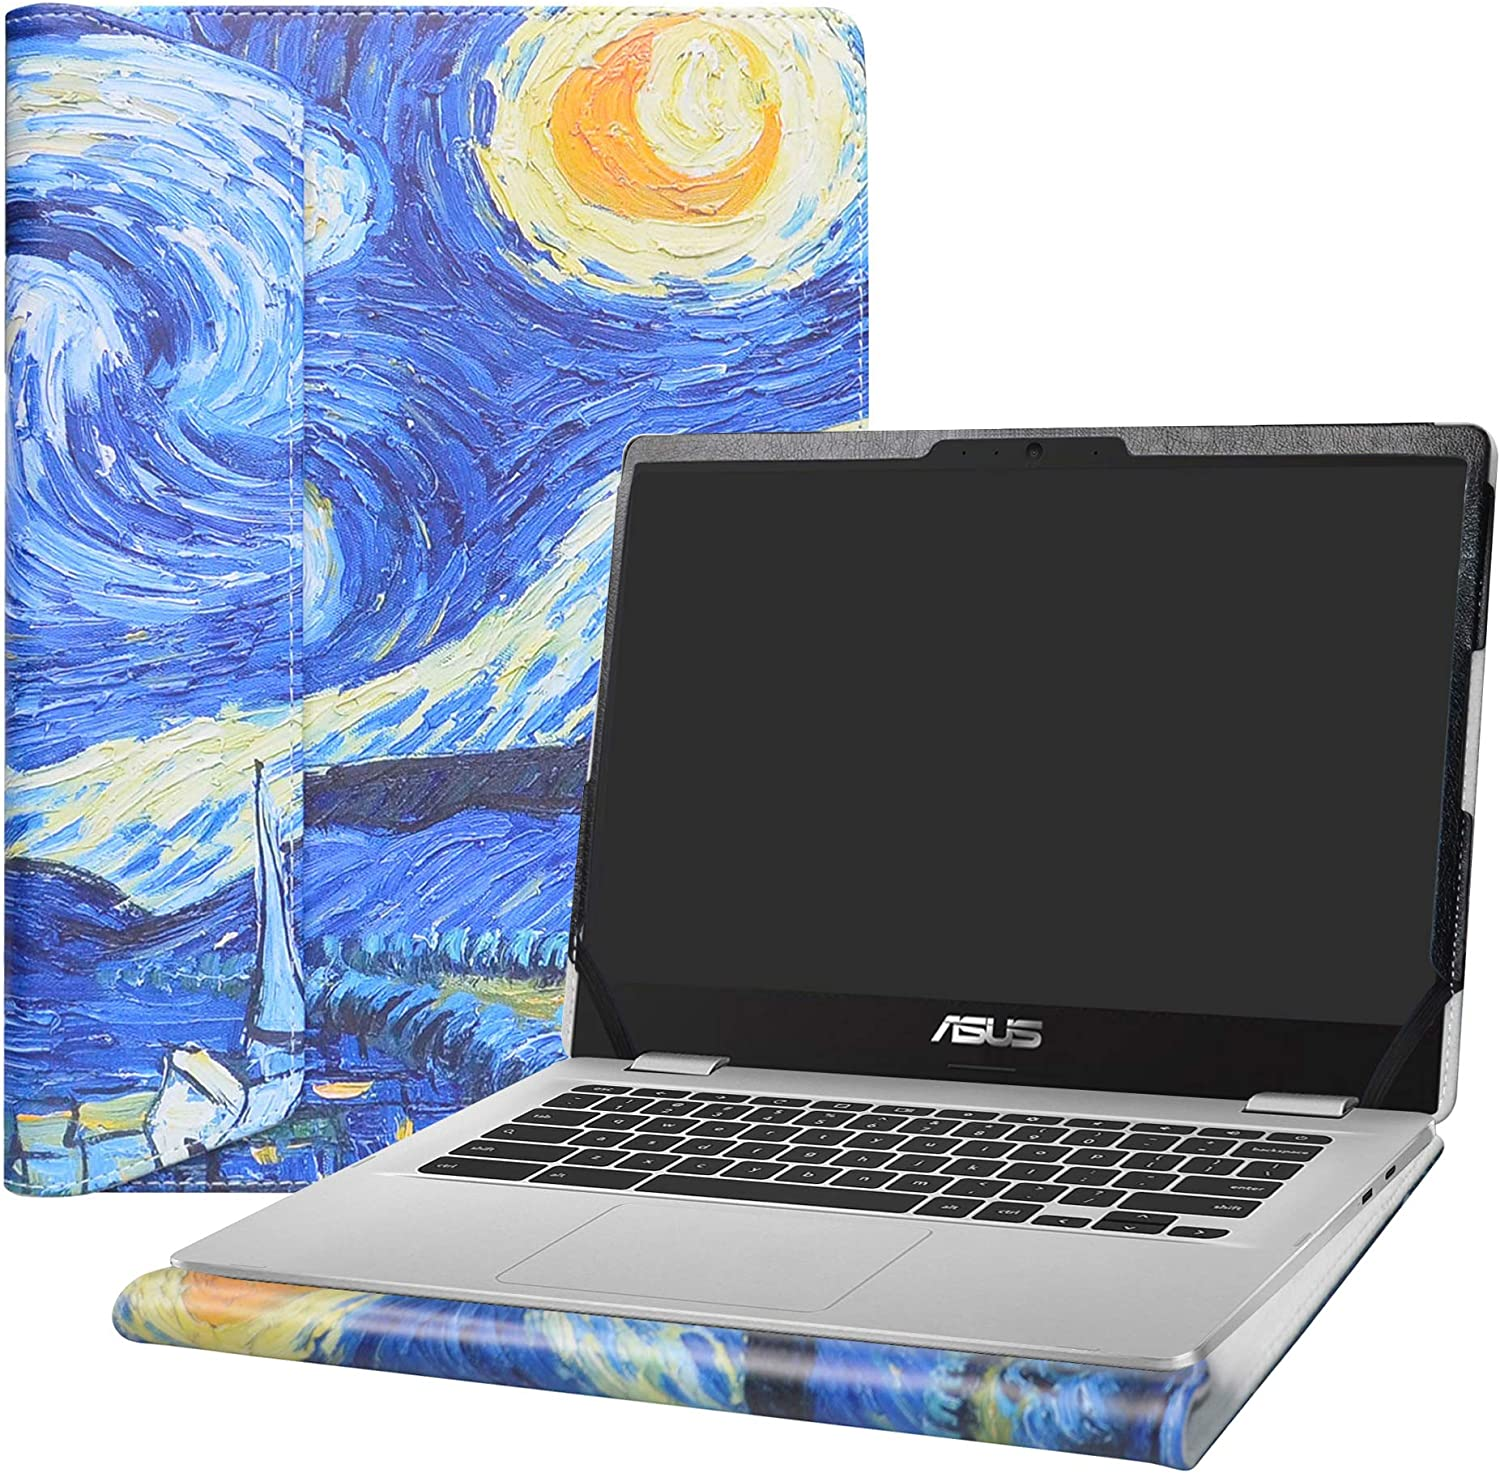 """Alapmk Protective Case Cover for 15.6"""" ASUS Chromebook C523NA C523NA-DH02 C523NA-IH24T Series Laptop,Starry Night"""